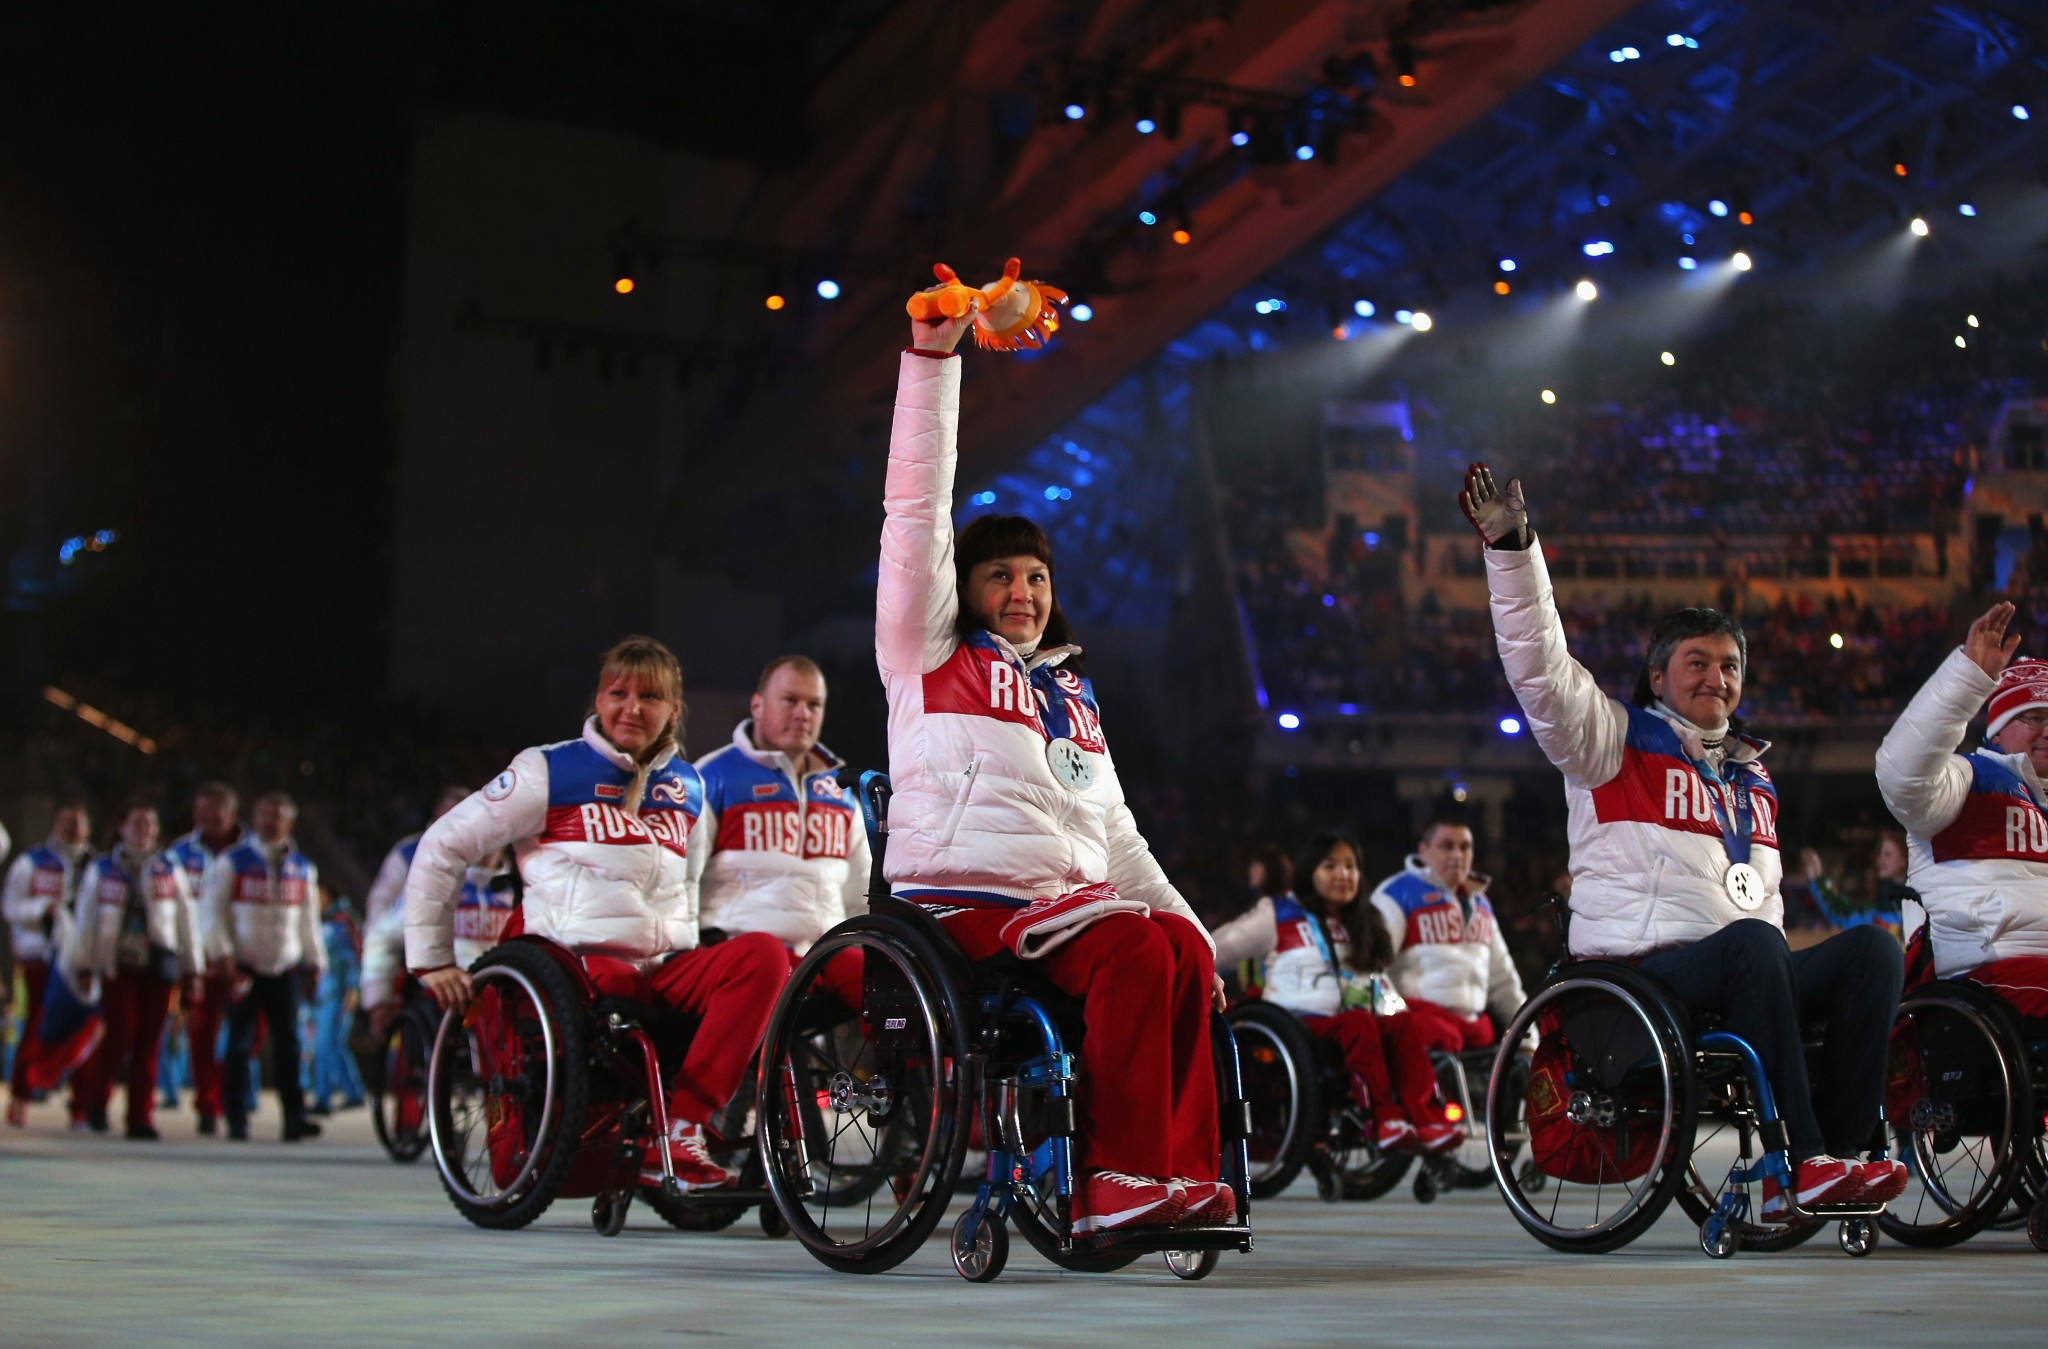 Russia could miss the 2018 Winter Paralympic Games in Pyeongchang following the doping scandal which emerged after they had finished top of the medals table at Sochi 2014 ©Getty Images